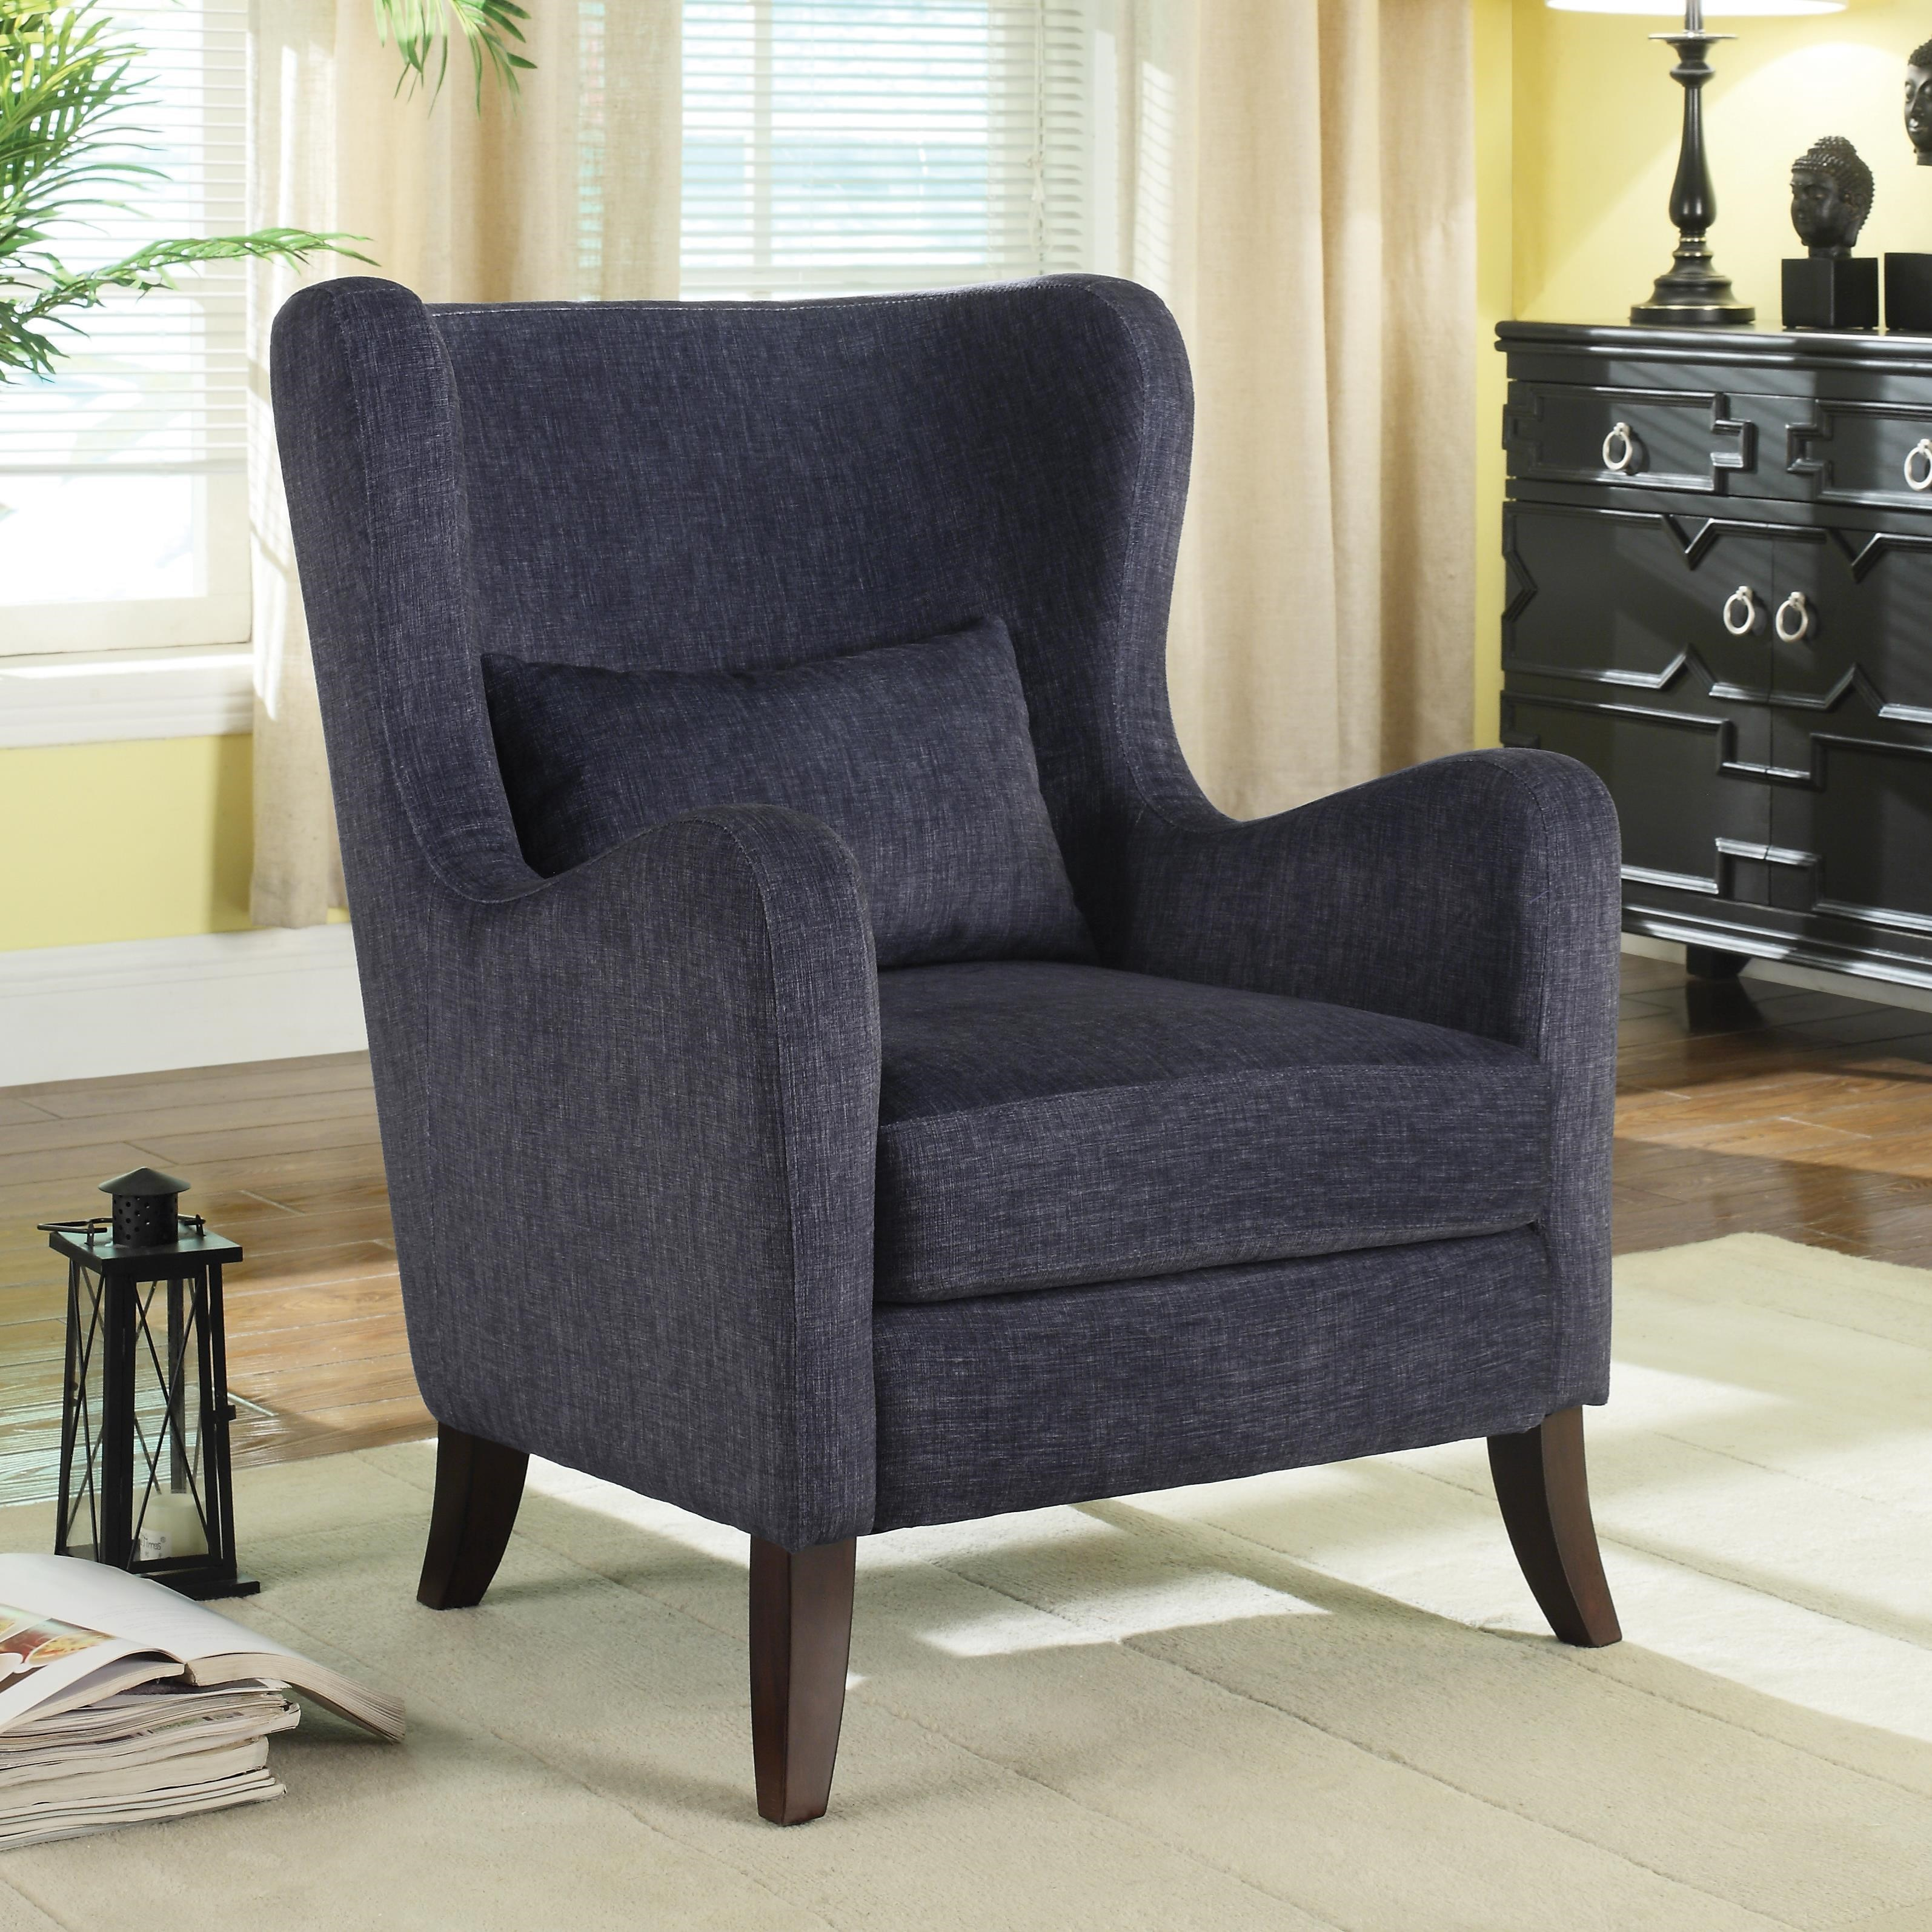 Coaster Accent Seating Accent Chair - Item Number: 902684